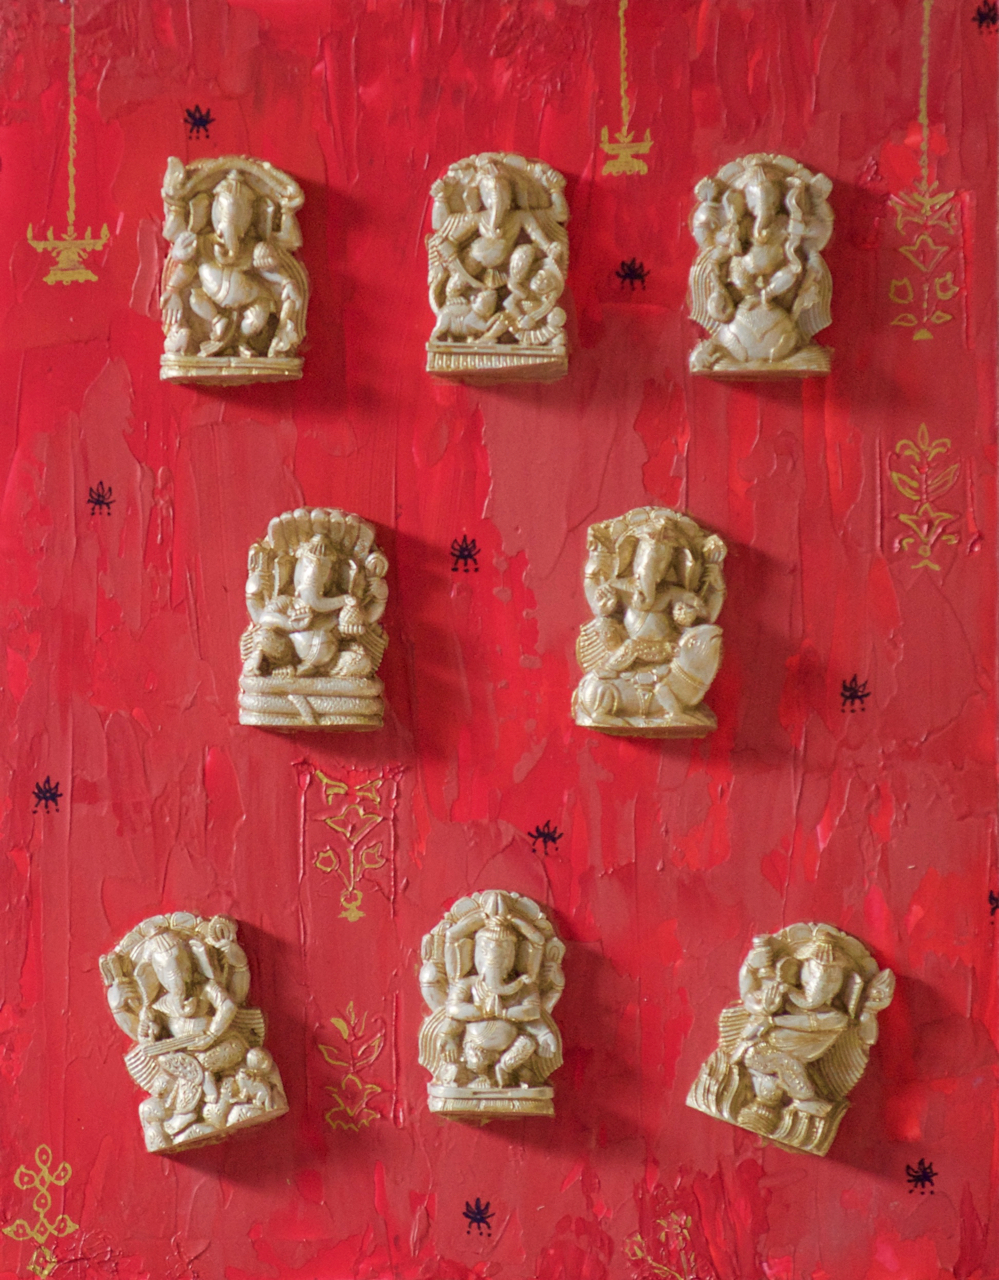 Ganesh Avatars